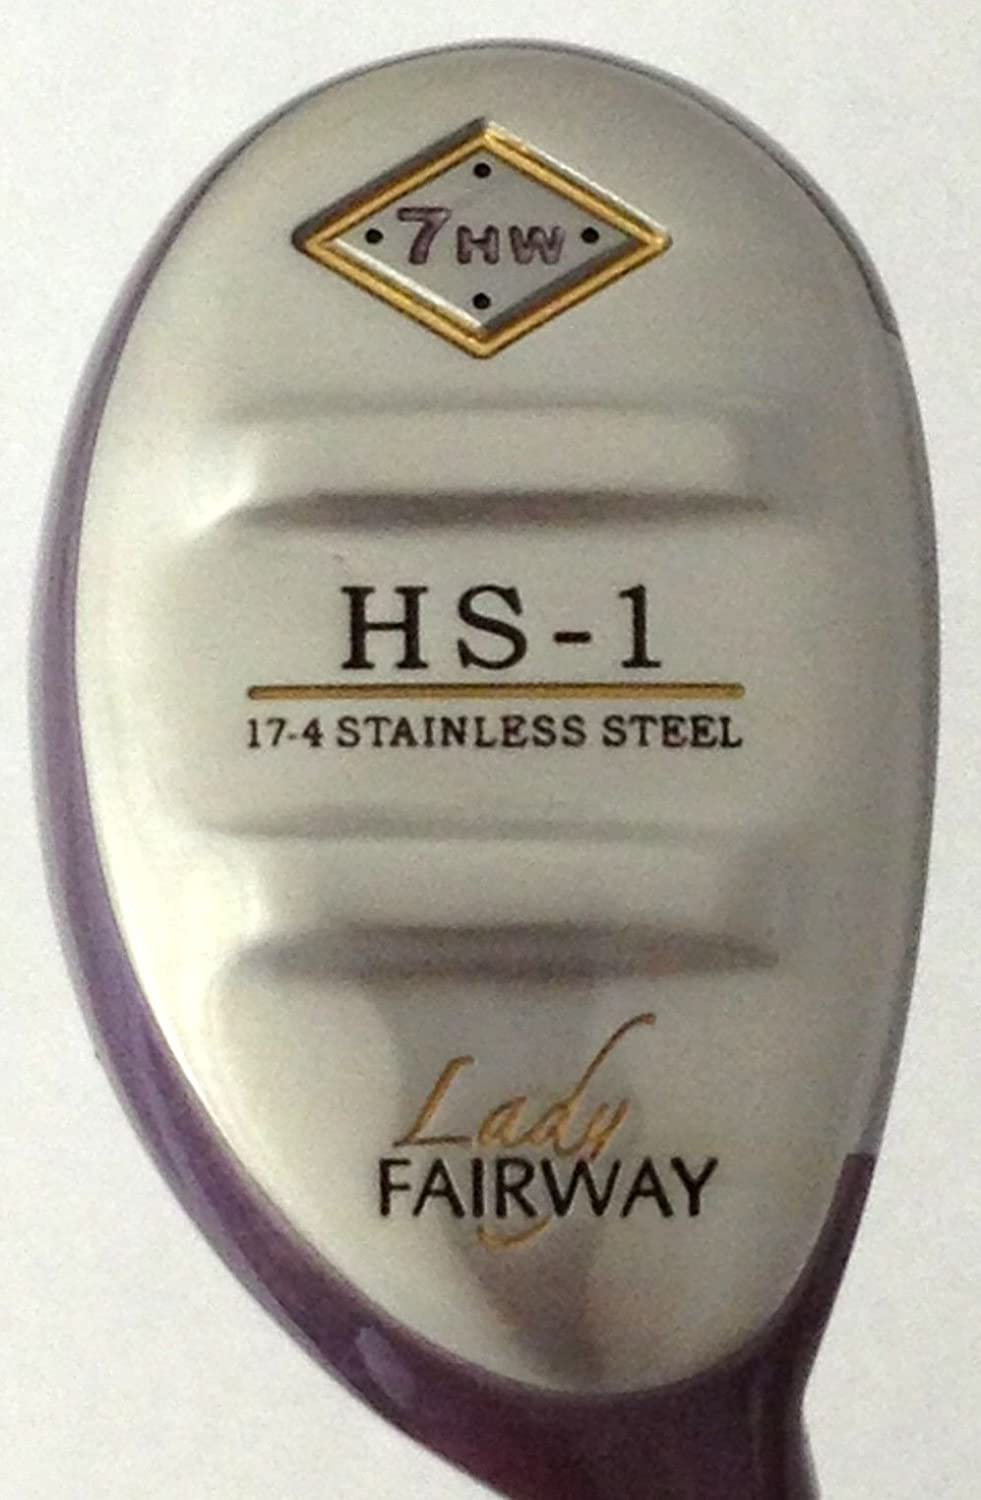 Amazon.com: Lady Fairway HS-1 7 HW Hybrid Fairway Madera ...